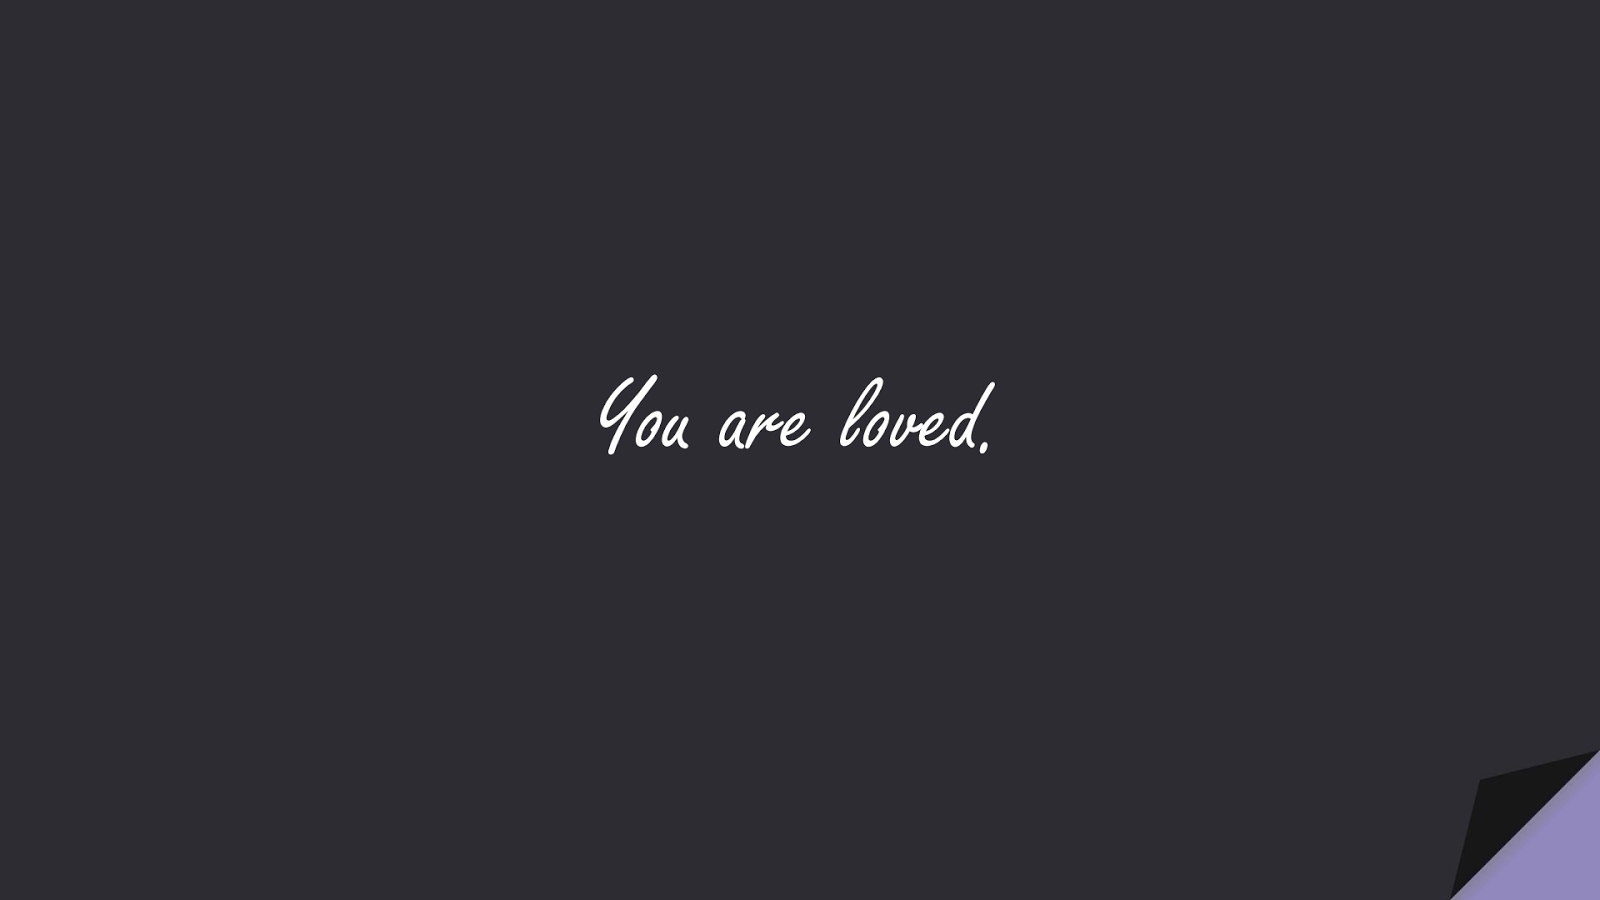 You are loved.FALSE